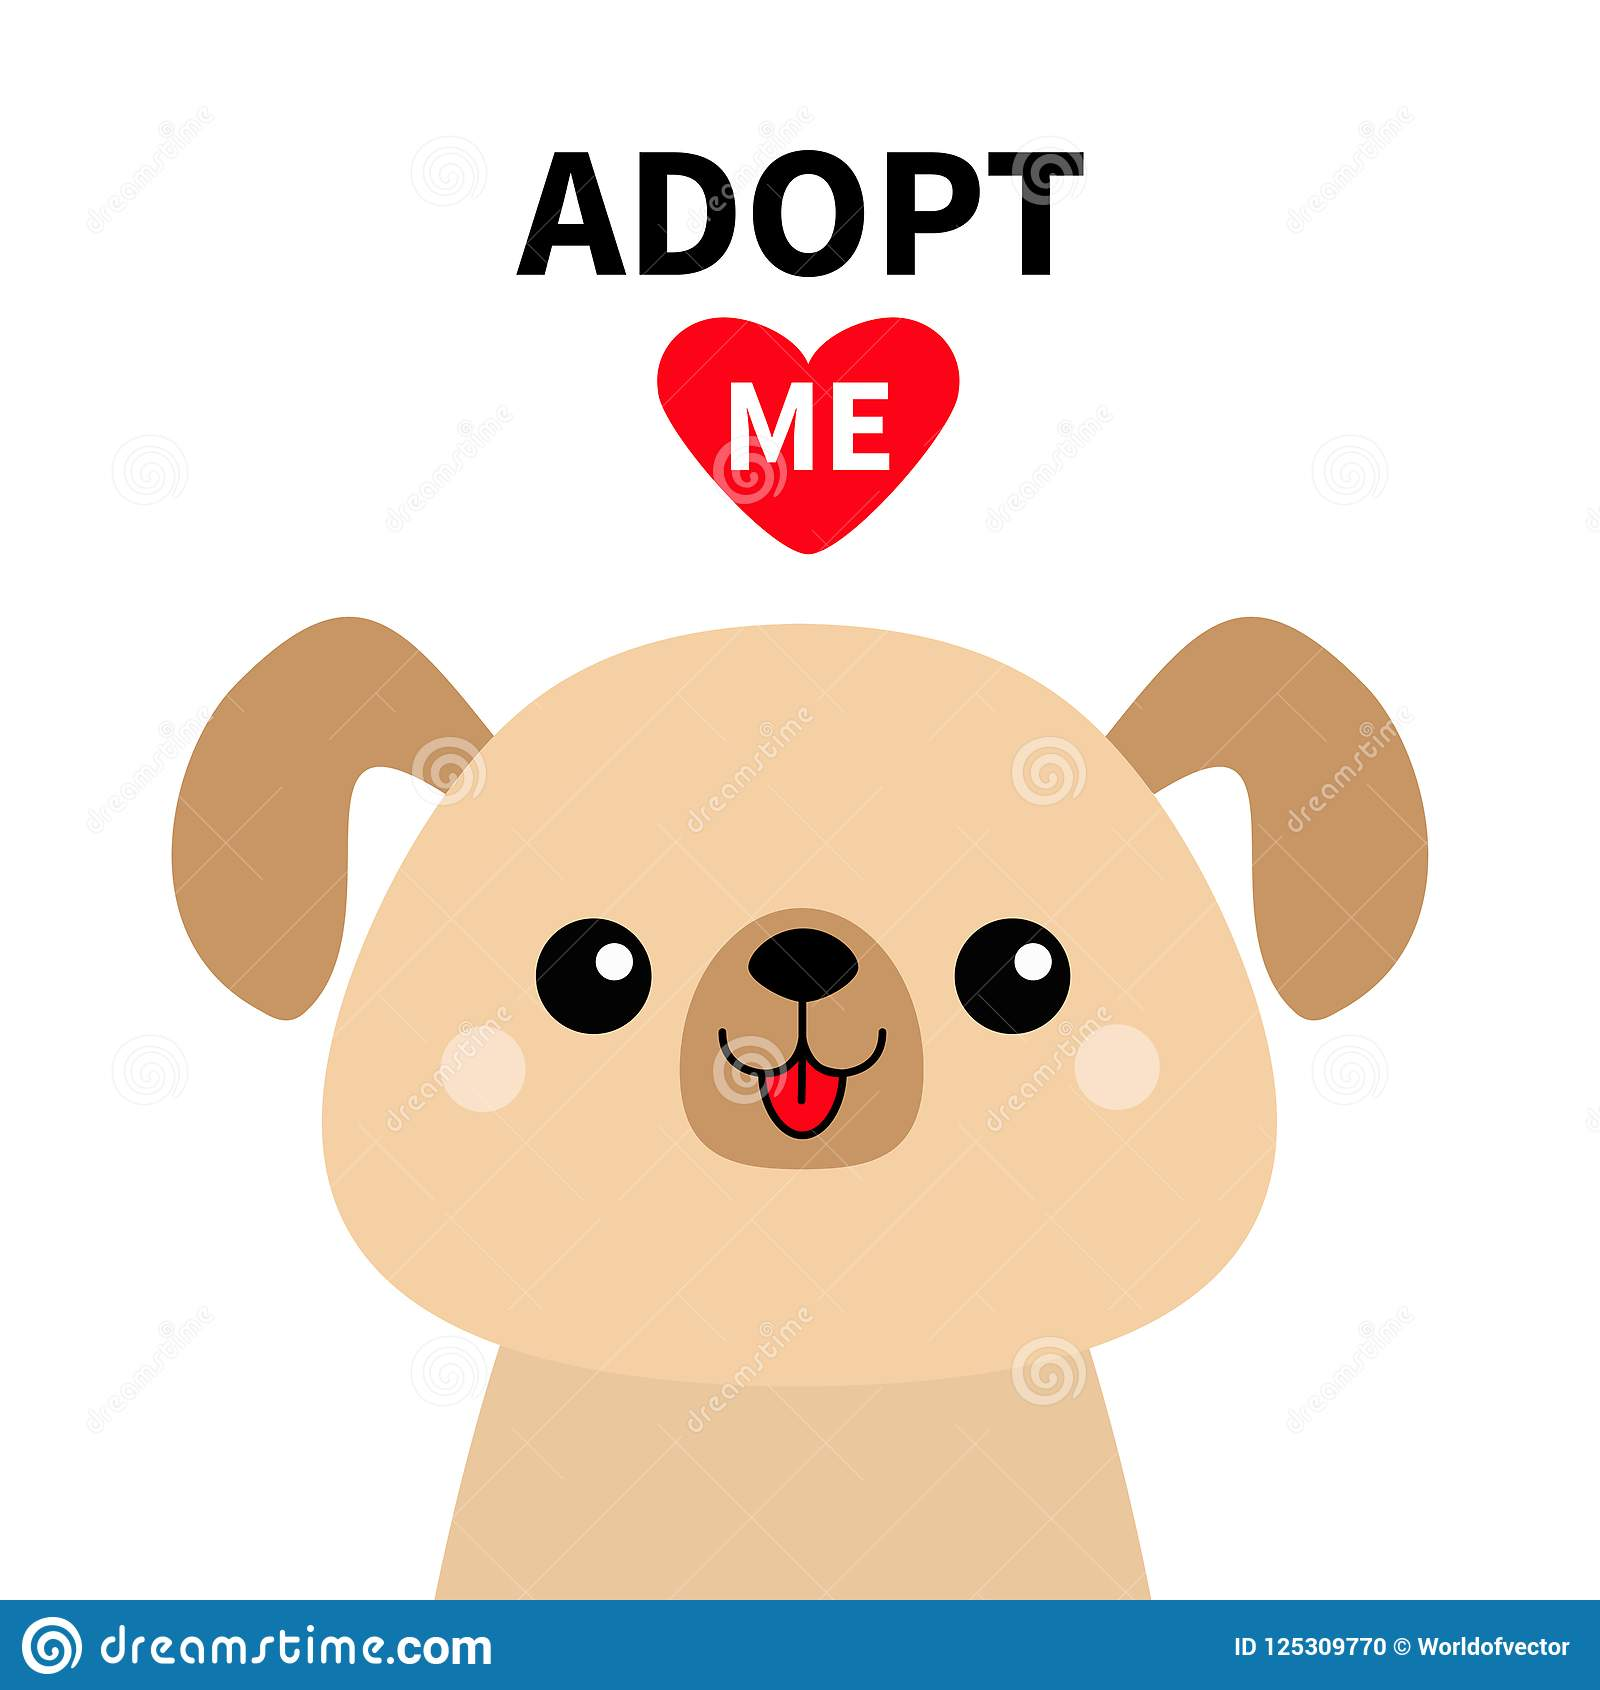 Adopt me. Cute dog face silhouette. Red heart. Pet adoption. Kawaii animal. Cute cartoon puppy character. Funny baby pooch. Help h